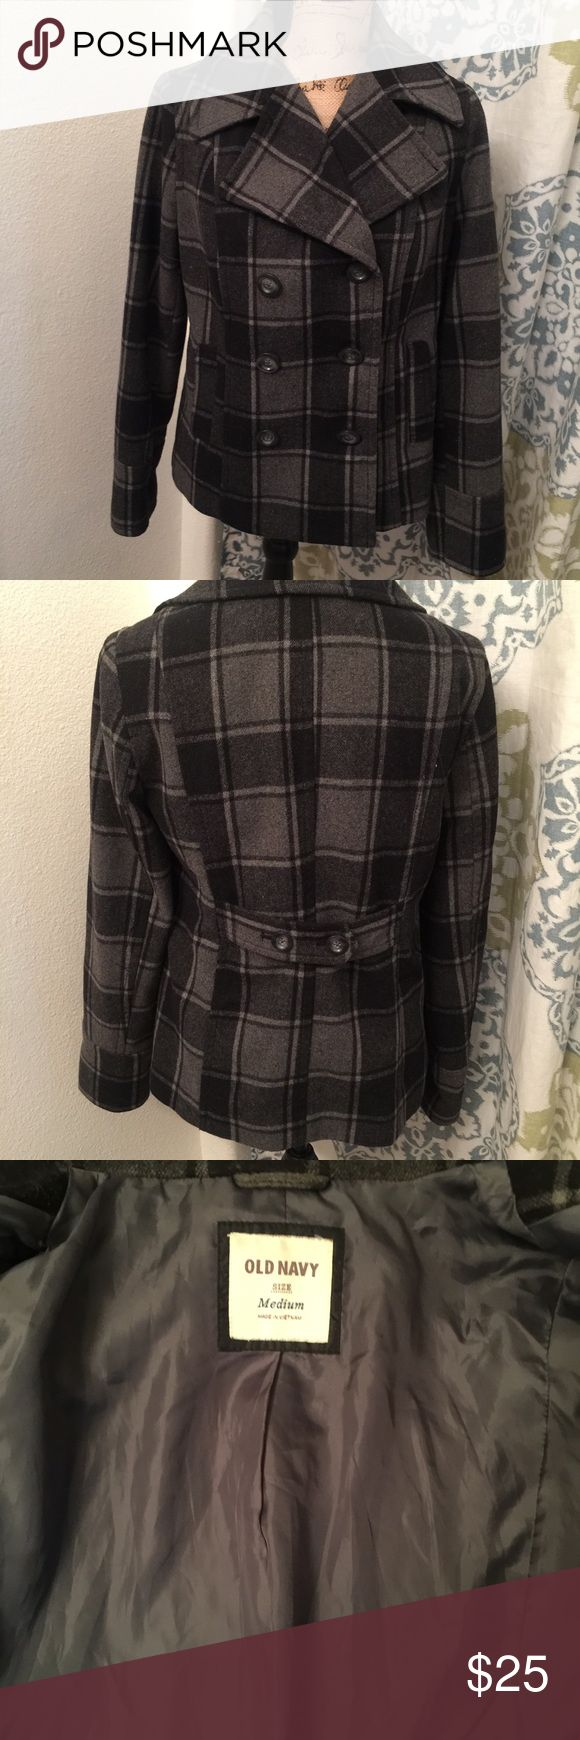 Old Navy pea coat Grey and black plaid. Gently used no tears or stains! Awesome condition and very warm! Super cute! Wool blend outside fully lined inside. Very nice coat! Old Navy Jackets & Coats Pea Coats